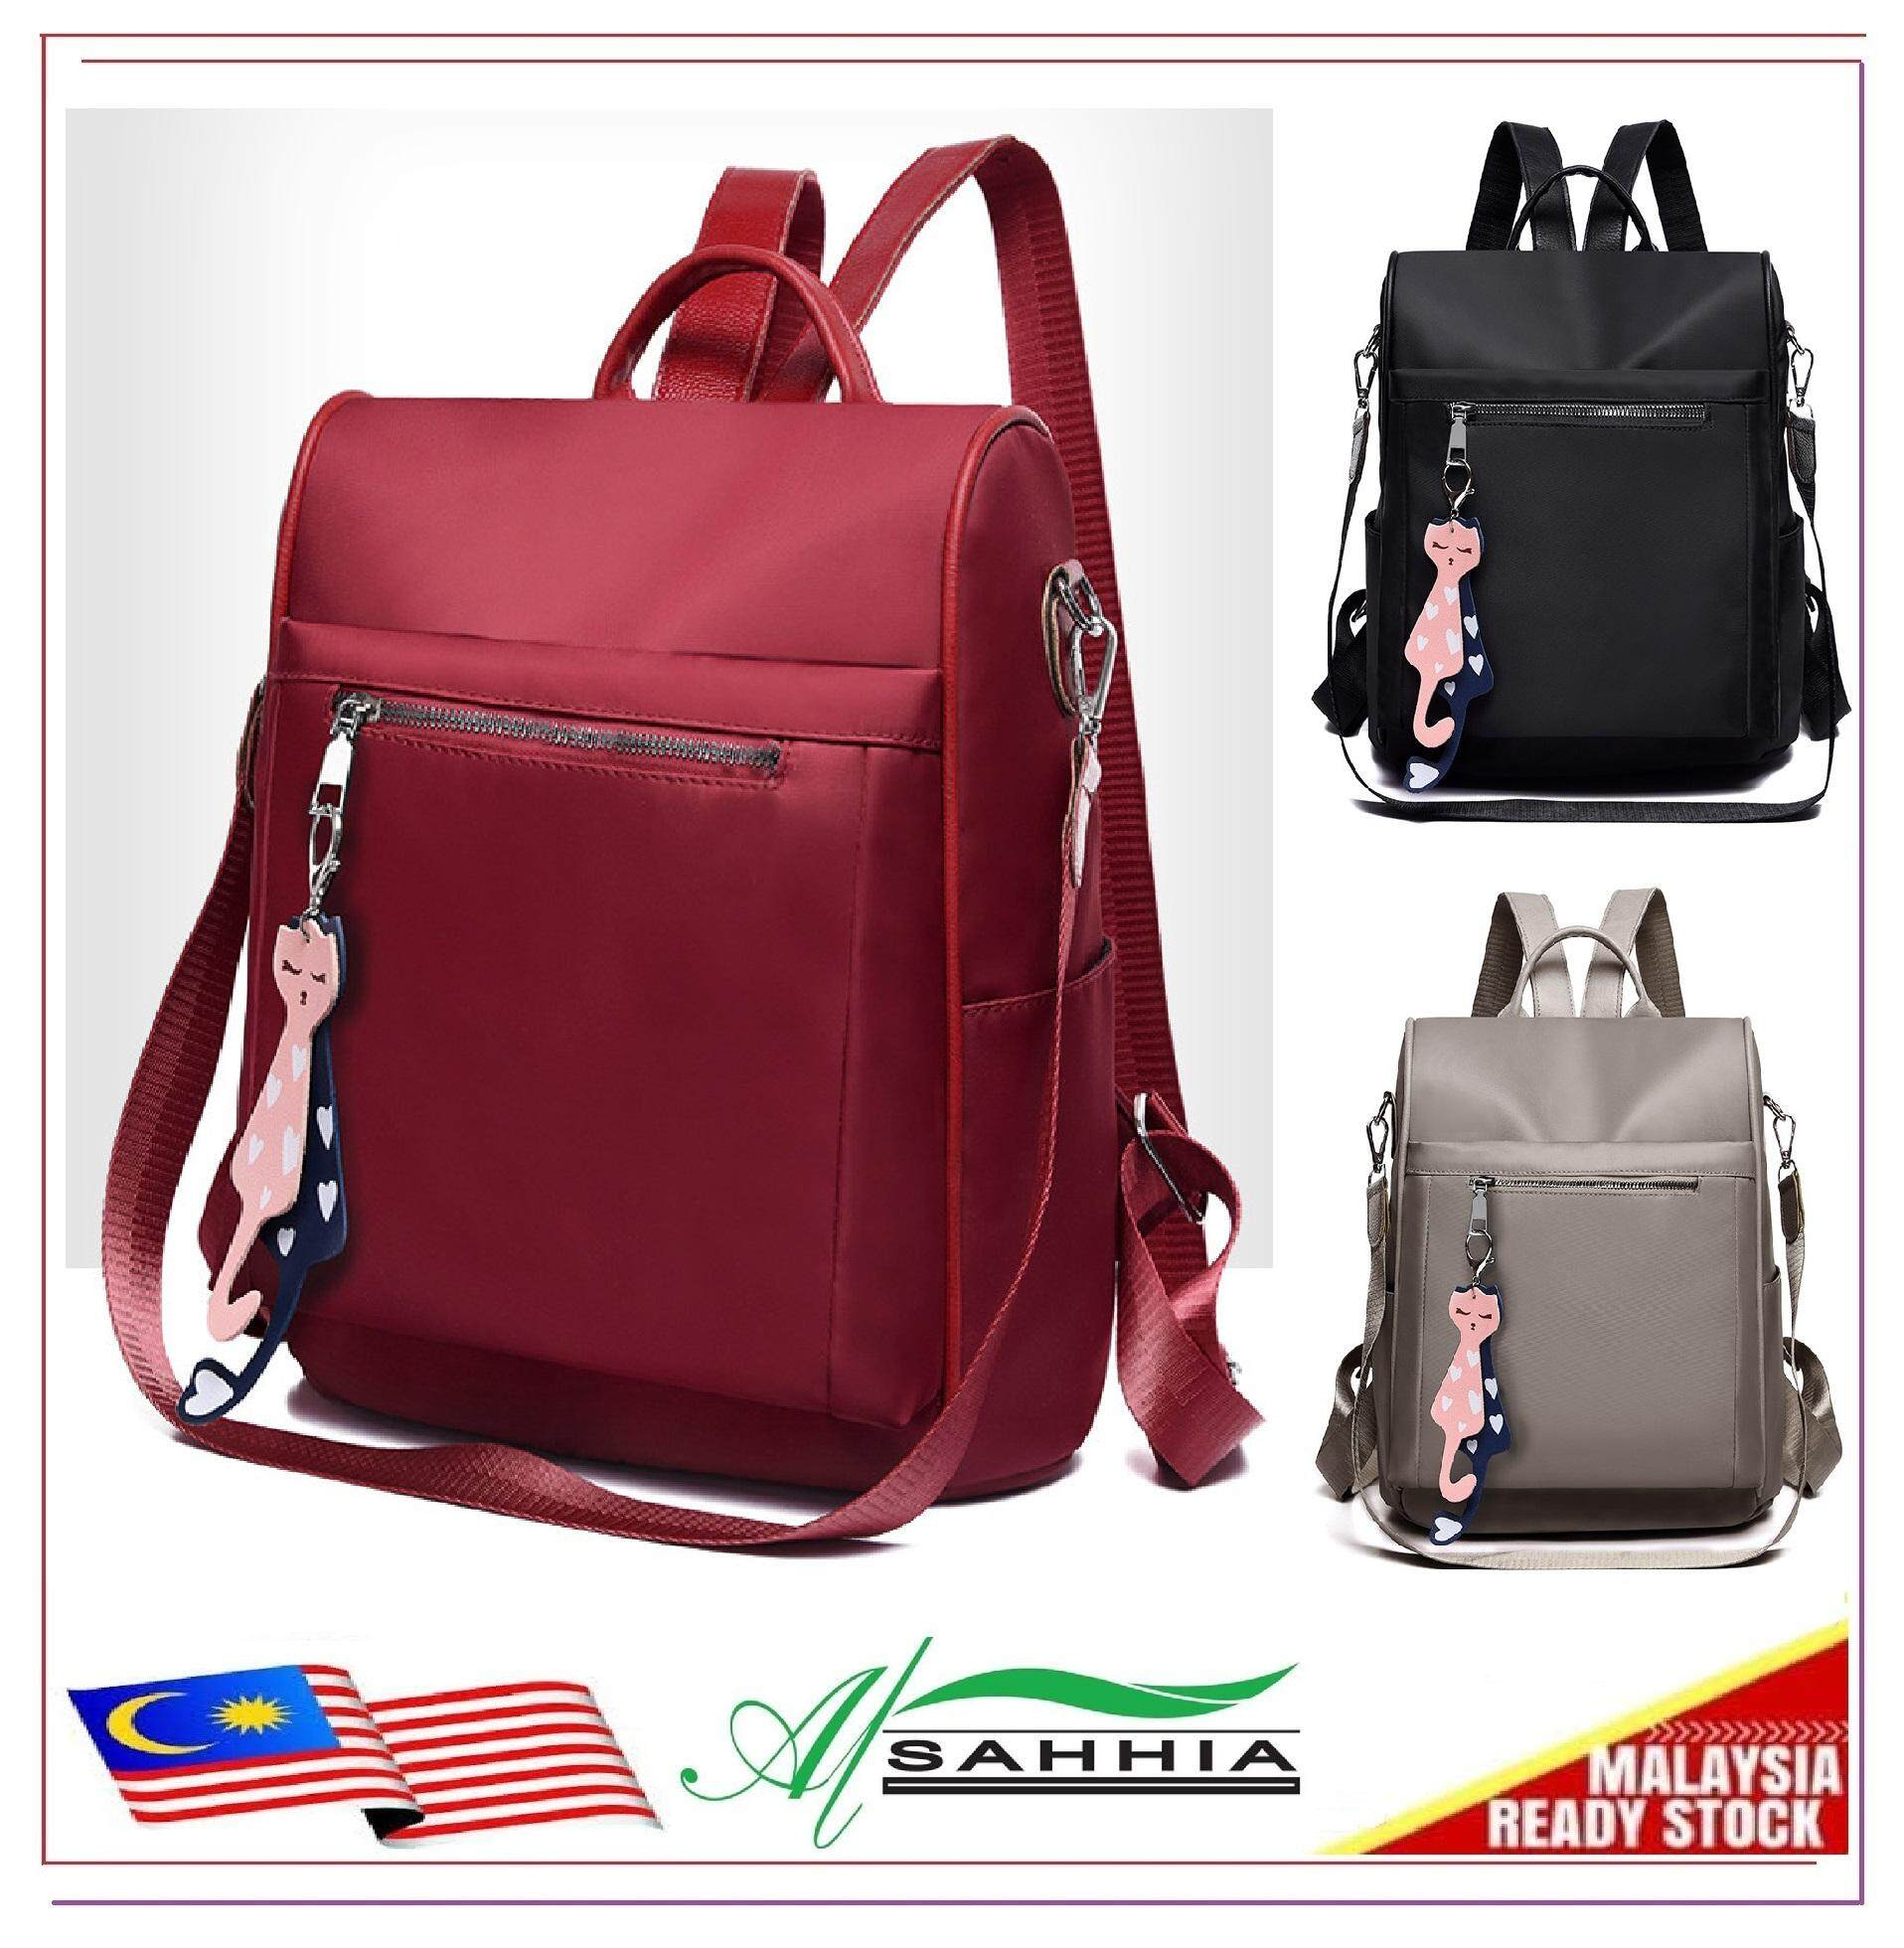 2352395c4f40 Latest Women s Bags Only on Lazada Malaysia!